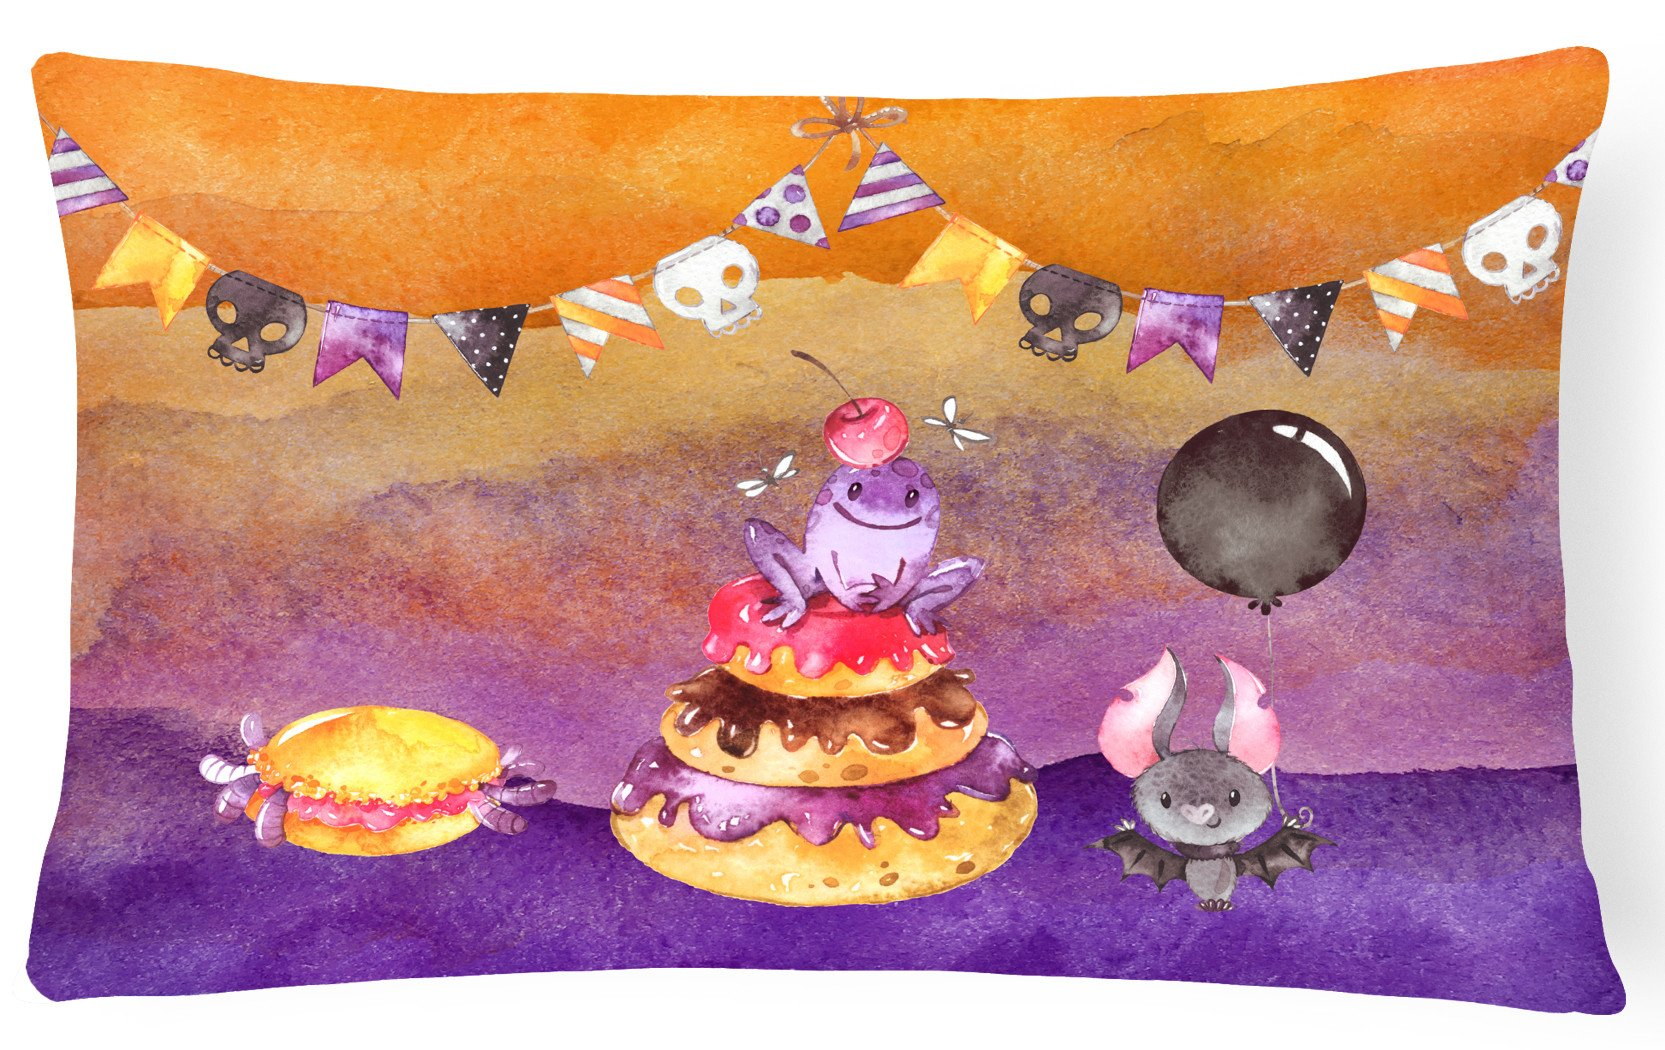 Halloween Sweets Party Canvas Fabric Decorative Pillow BB7463PW1216 by Caroline's Treasures